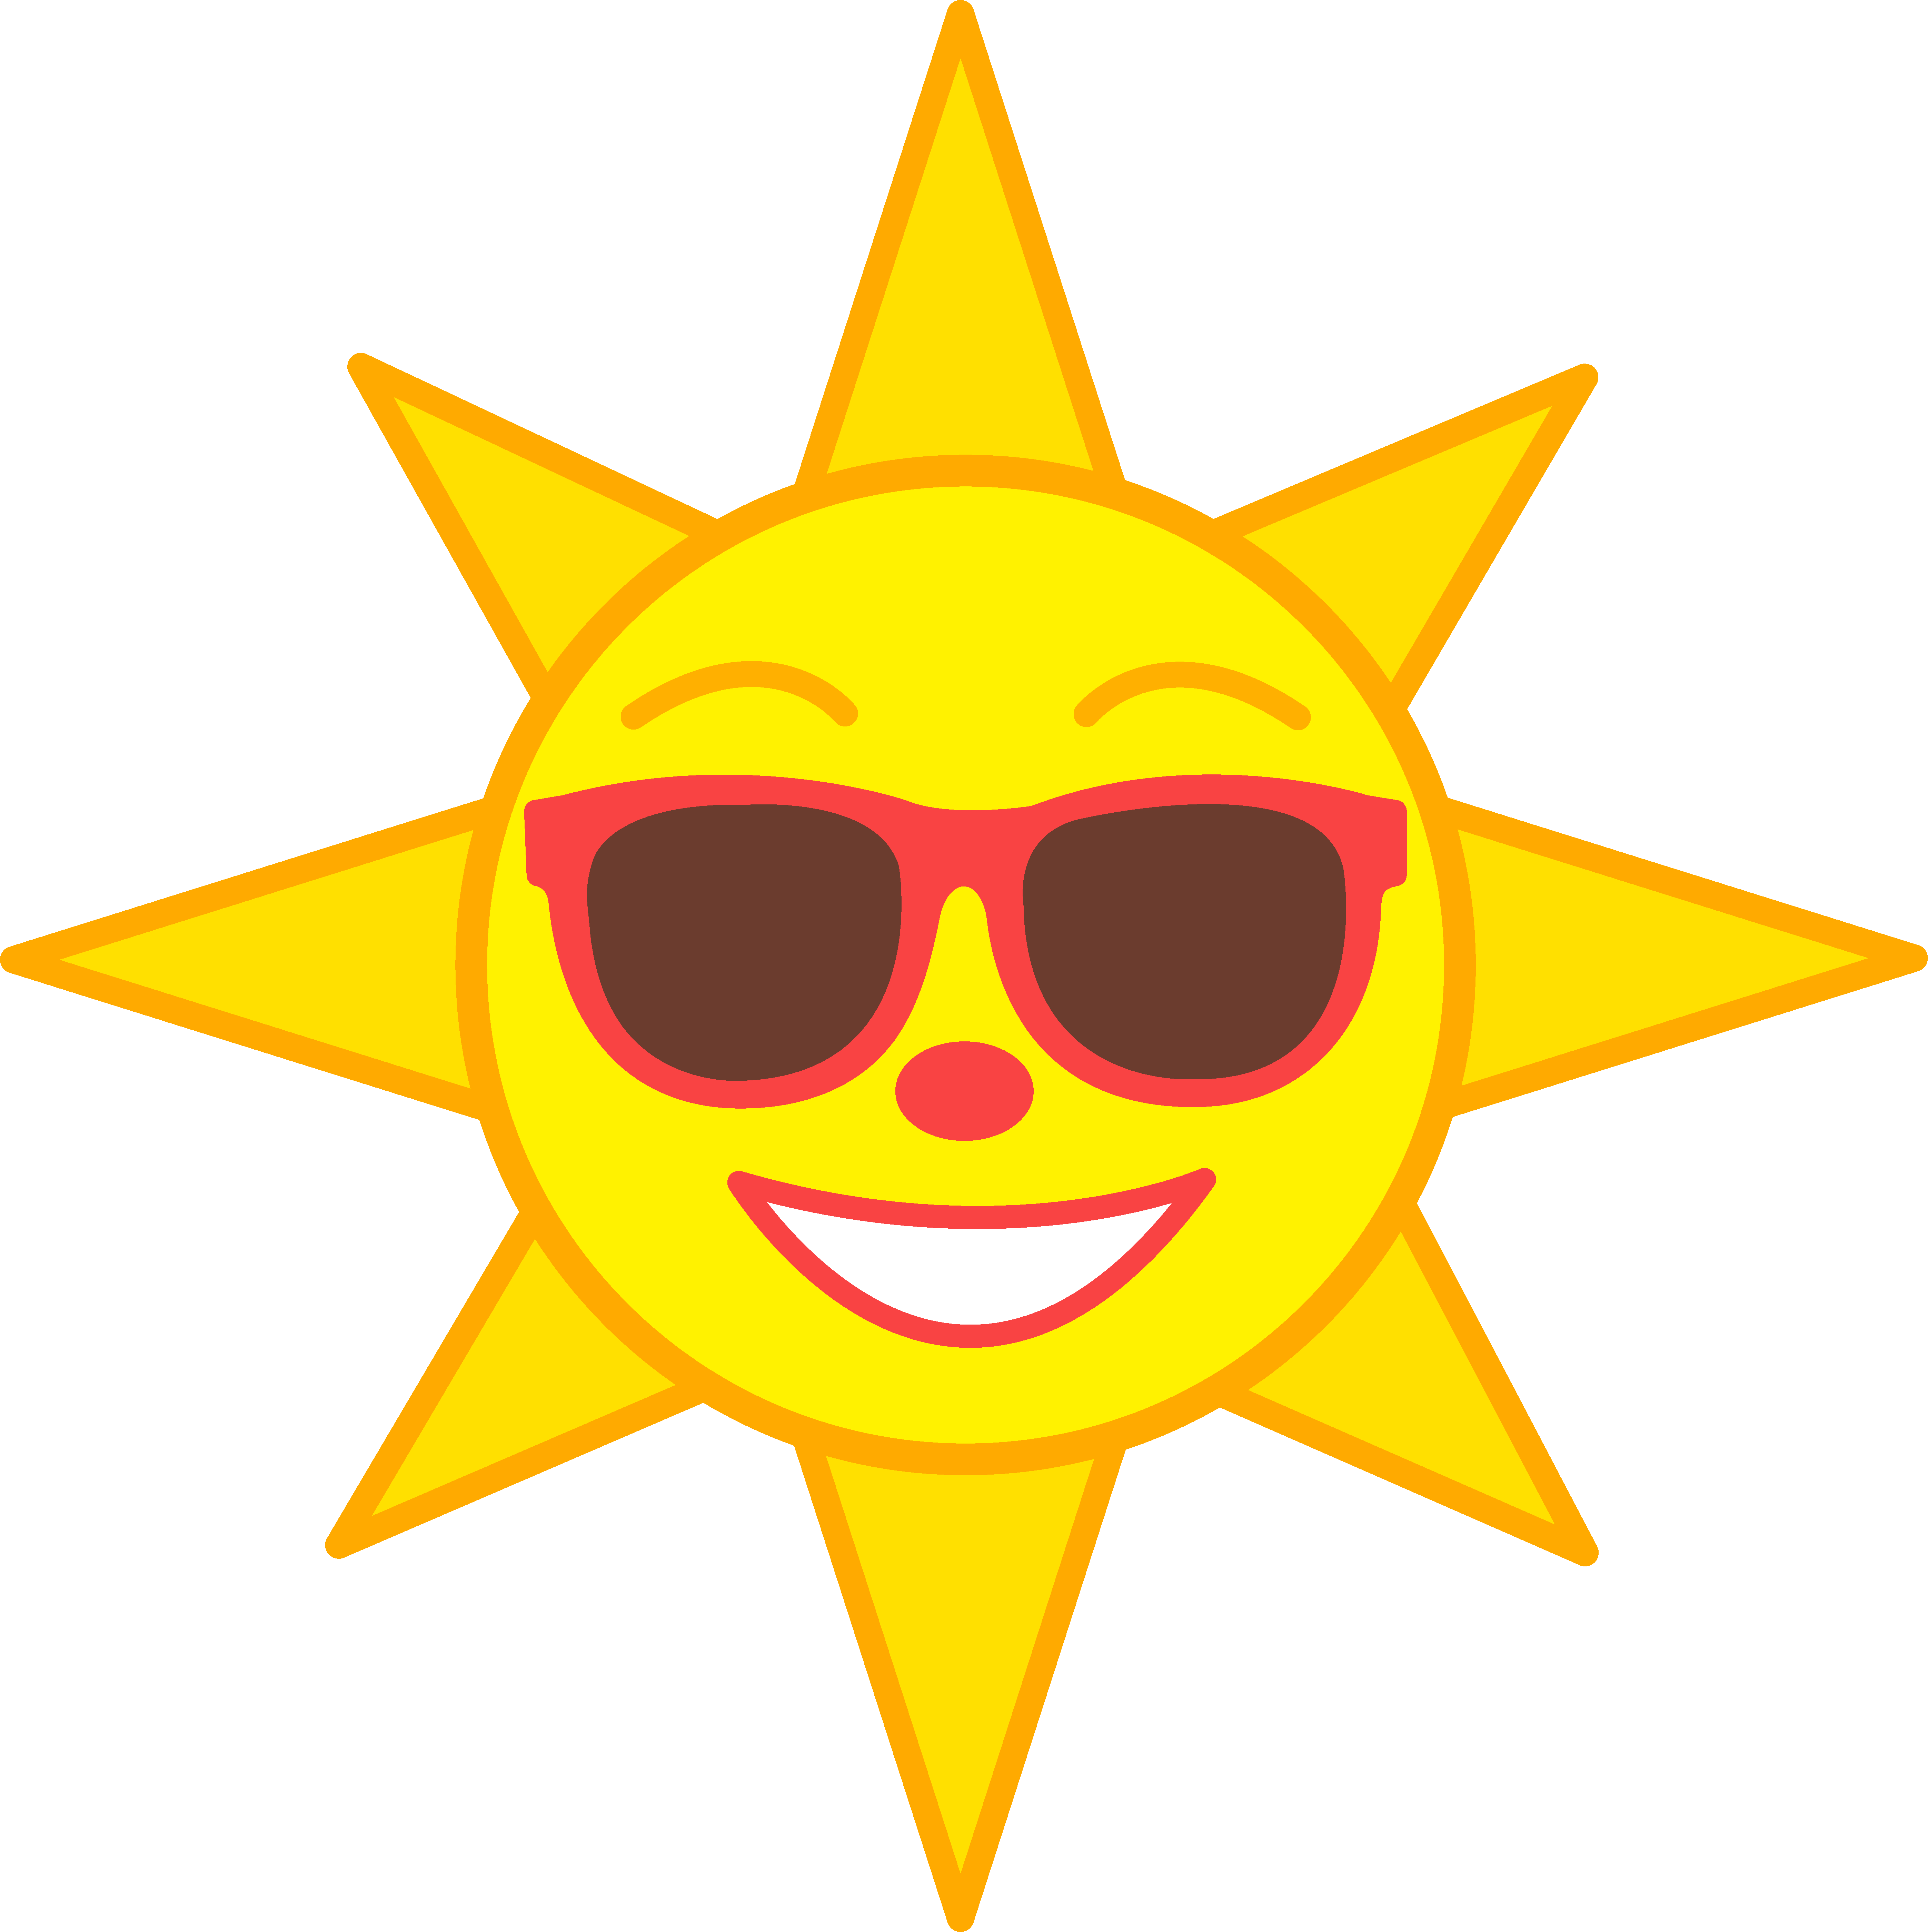 Sunny clipart warm. Free sun images download